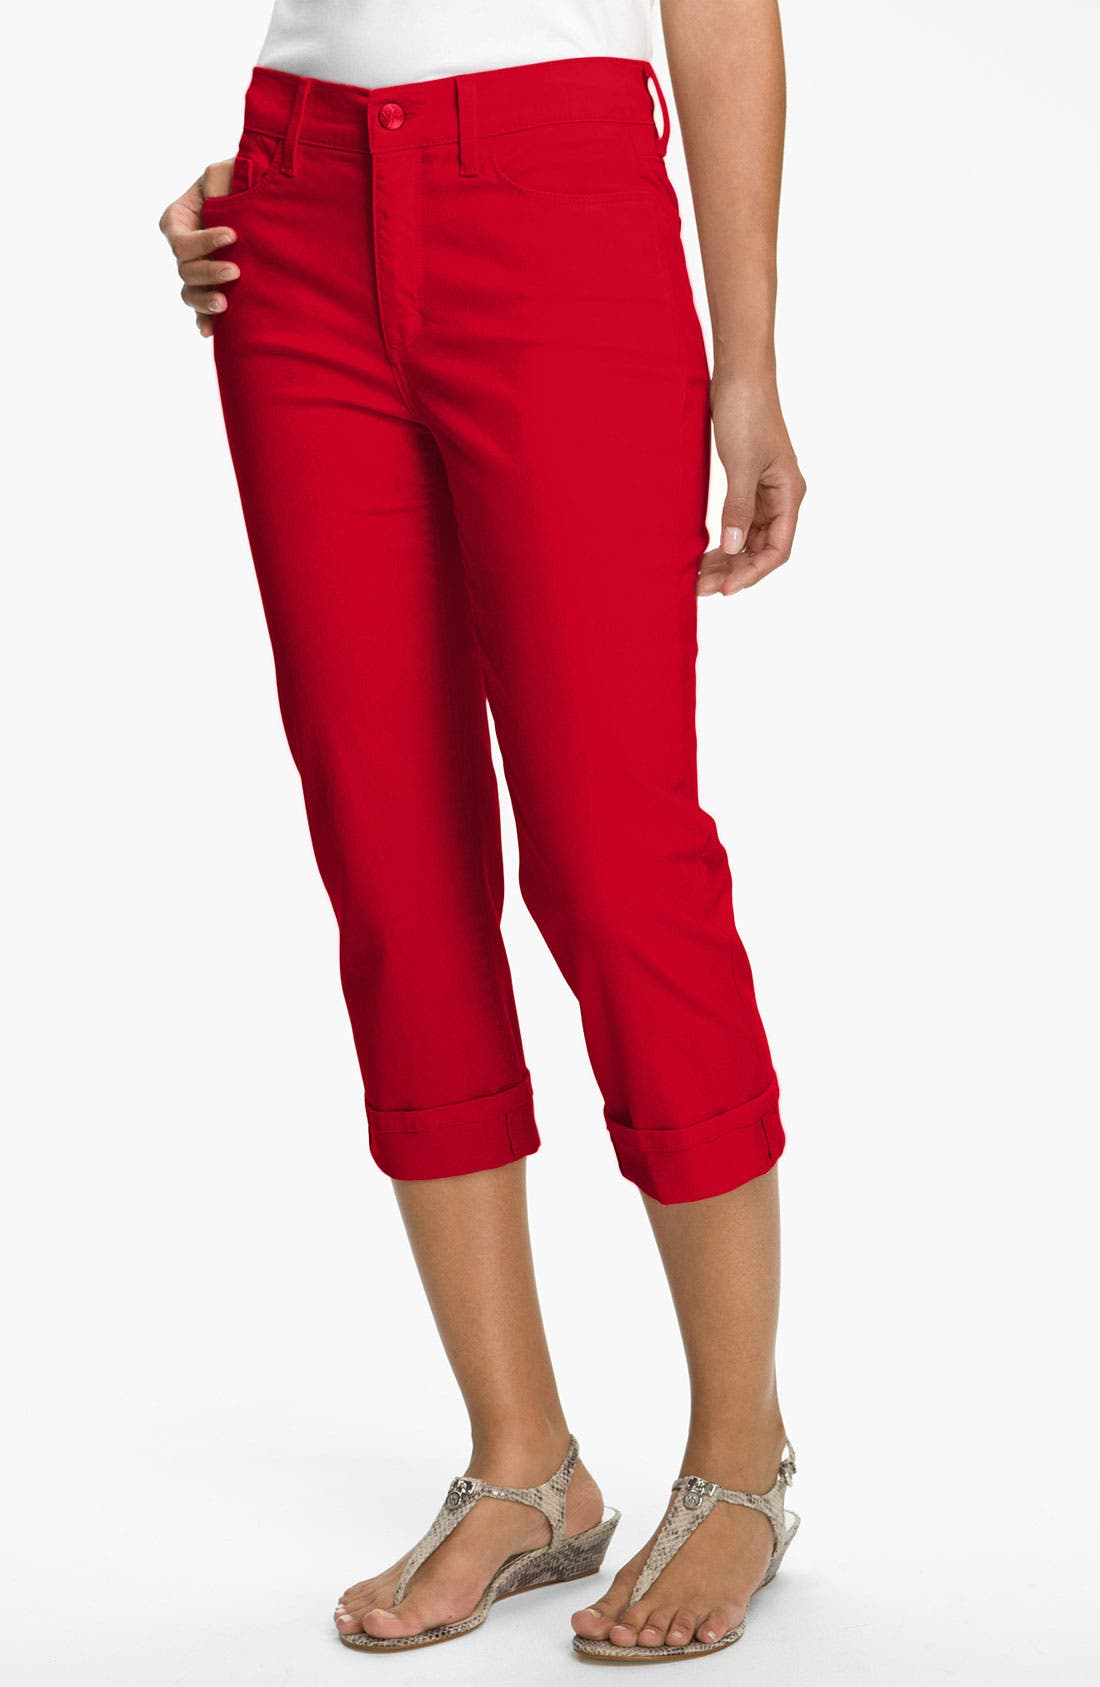 Alternate Image 1 Selected - NYDJ 'Edna' Colored StretchTwill Crop Jeans